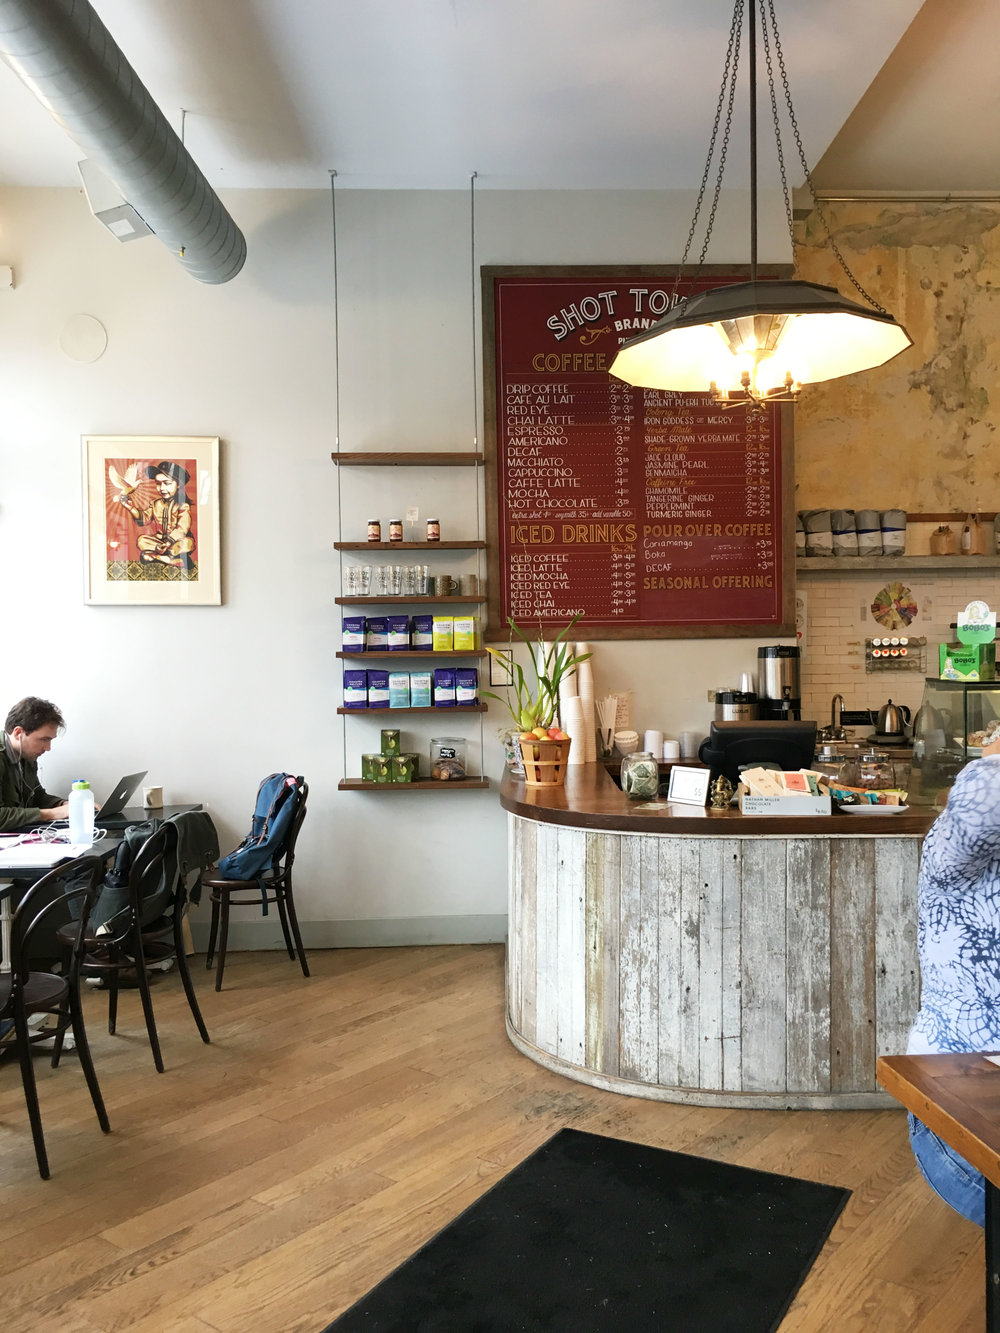 But First Coffee: Shot Tower Coffee in Philadelphia